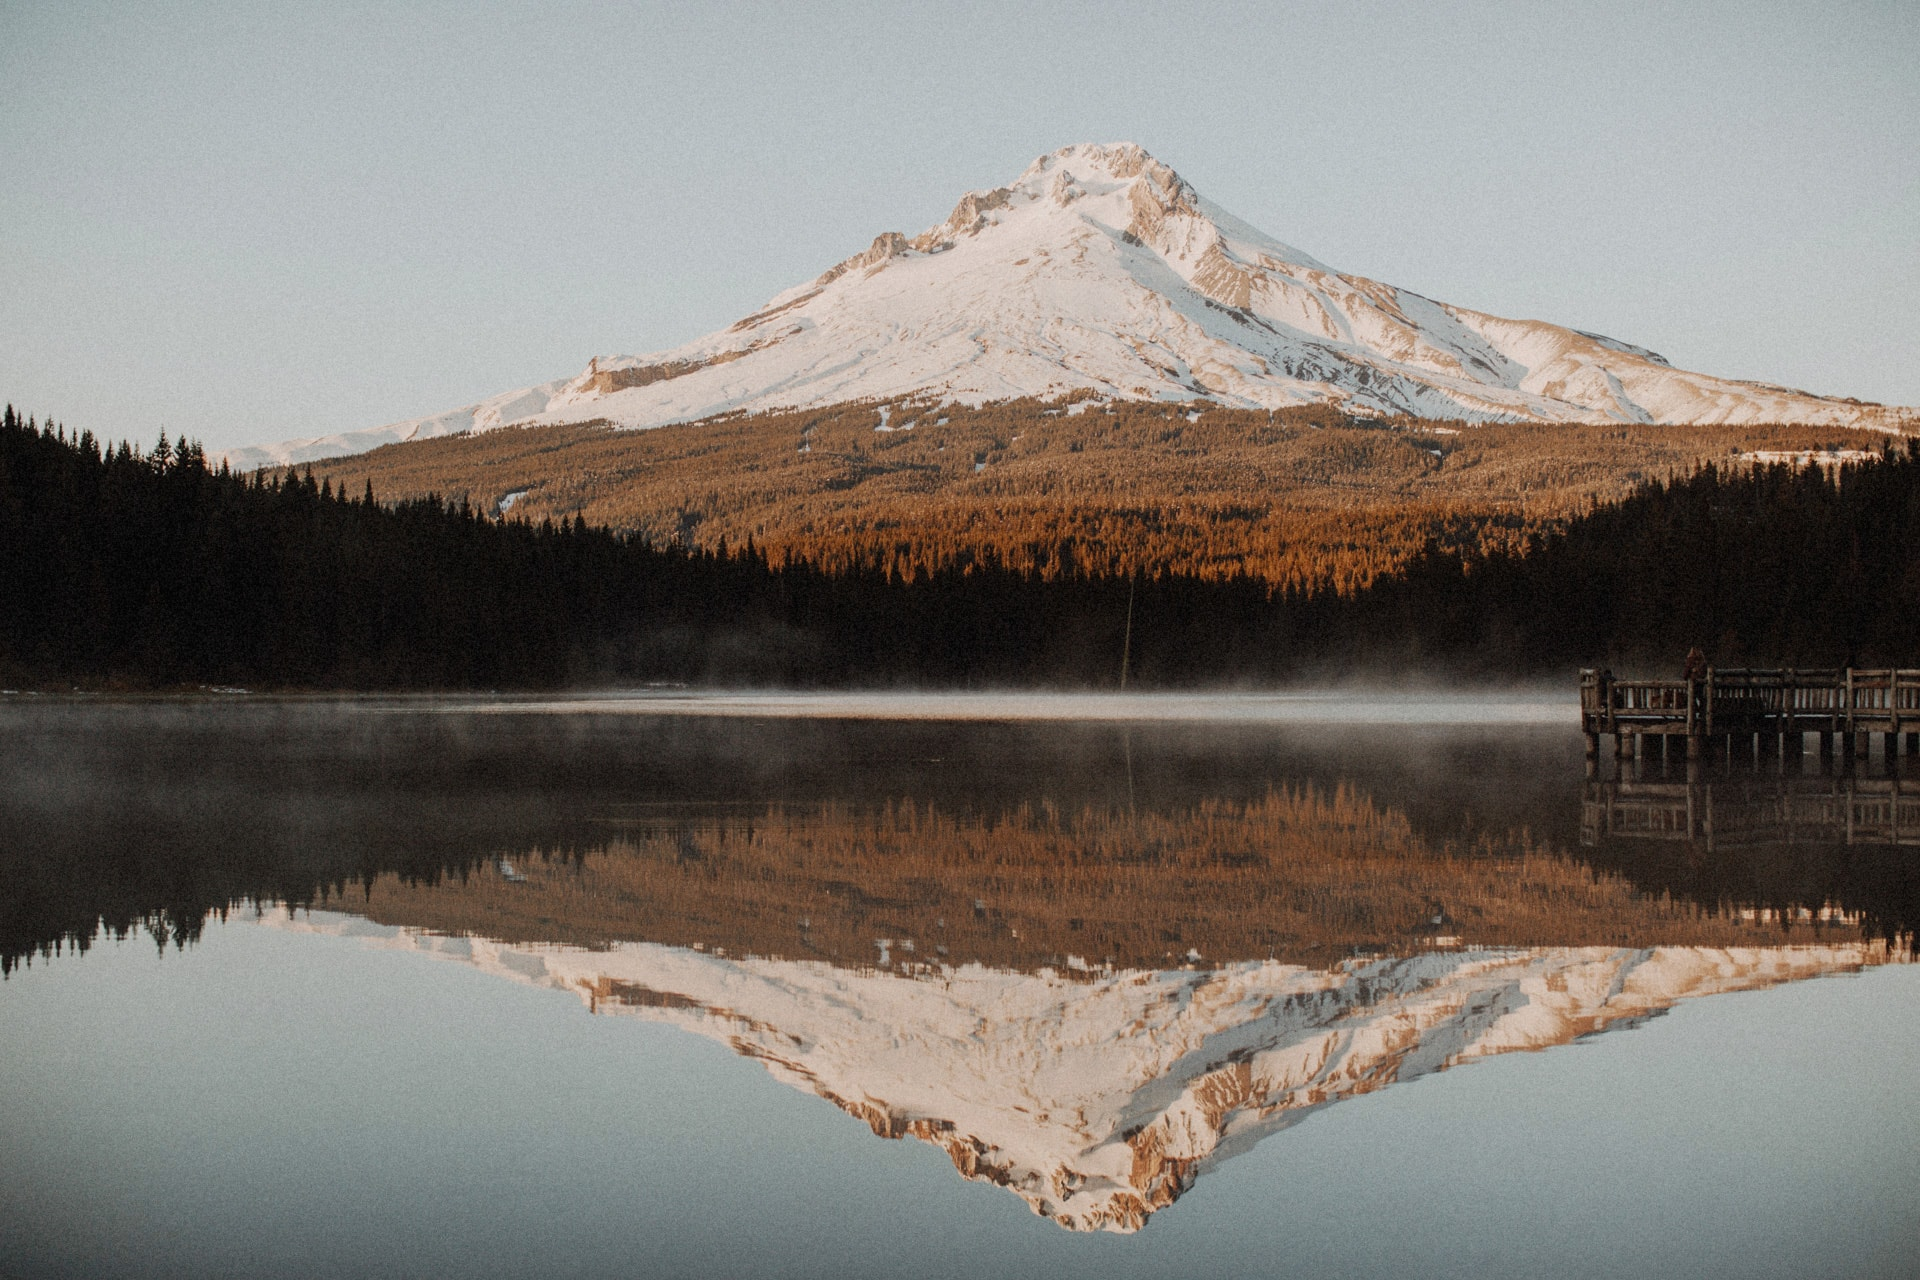 View of Mount Hood from Trillium Lake outside of Portland Oregon